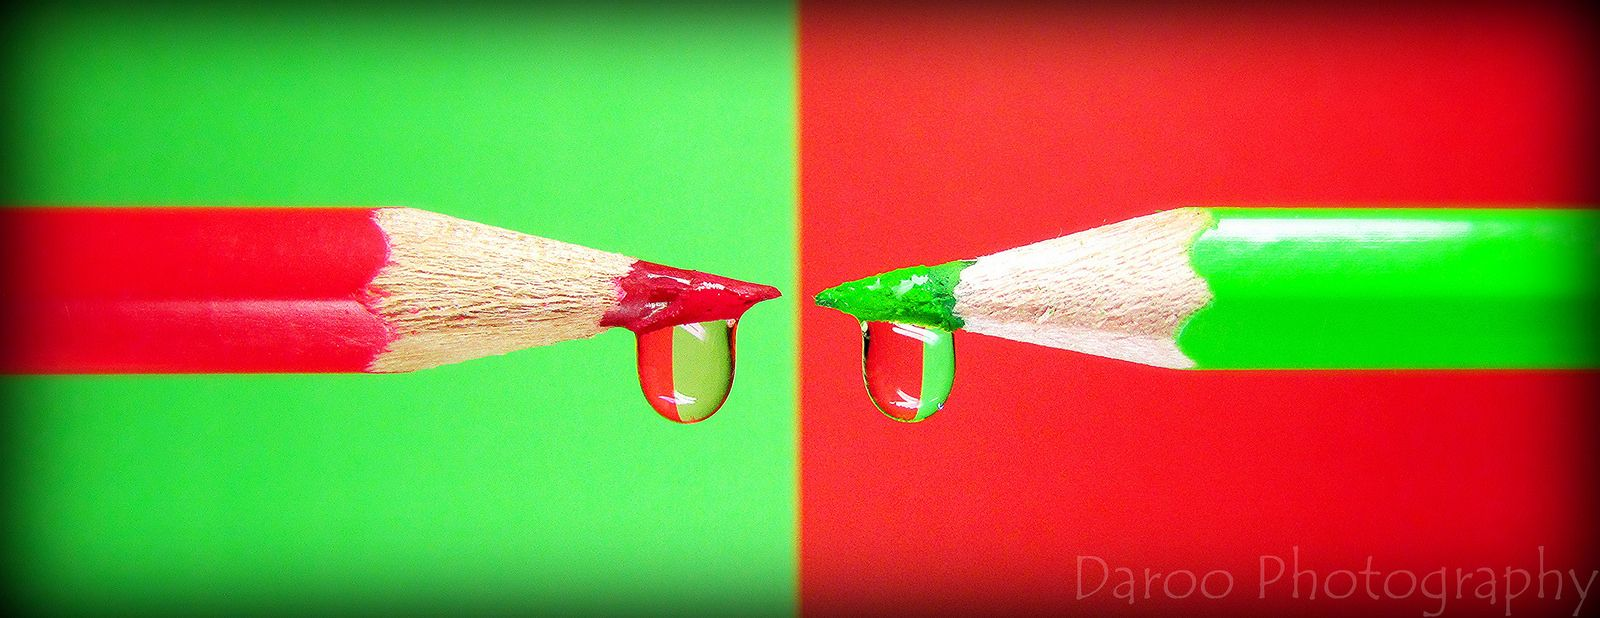 Lapices Y Colores Complementarios Pencils And Complementary Colors Color Exam Motion Photography Color Photography